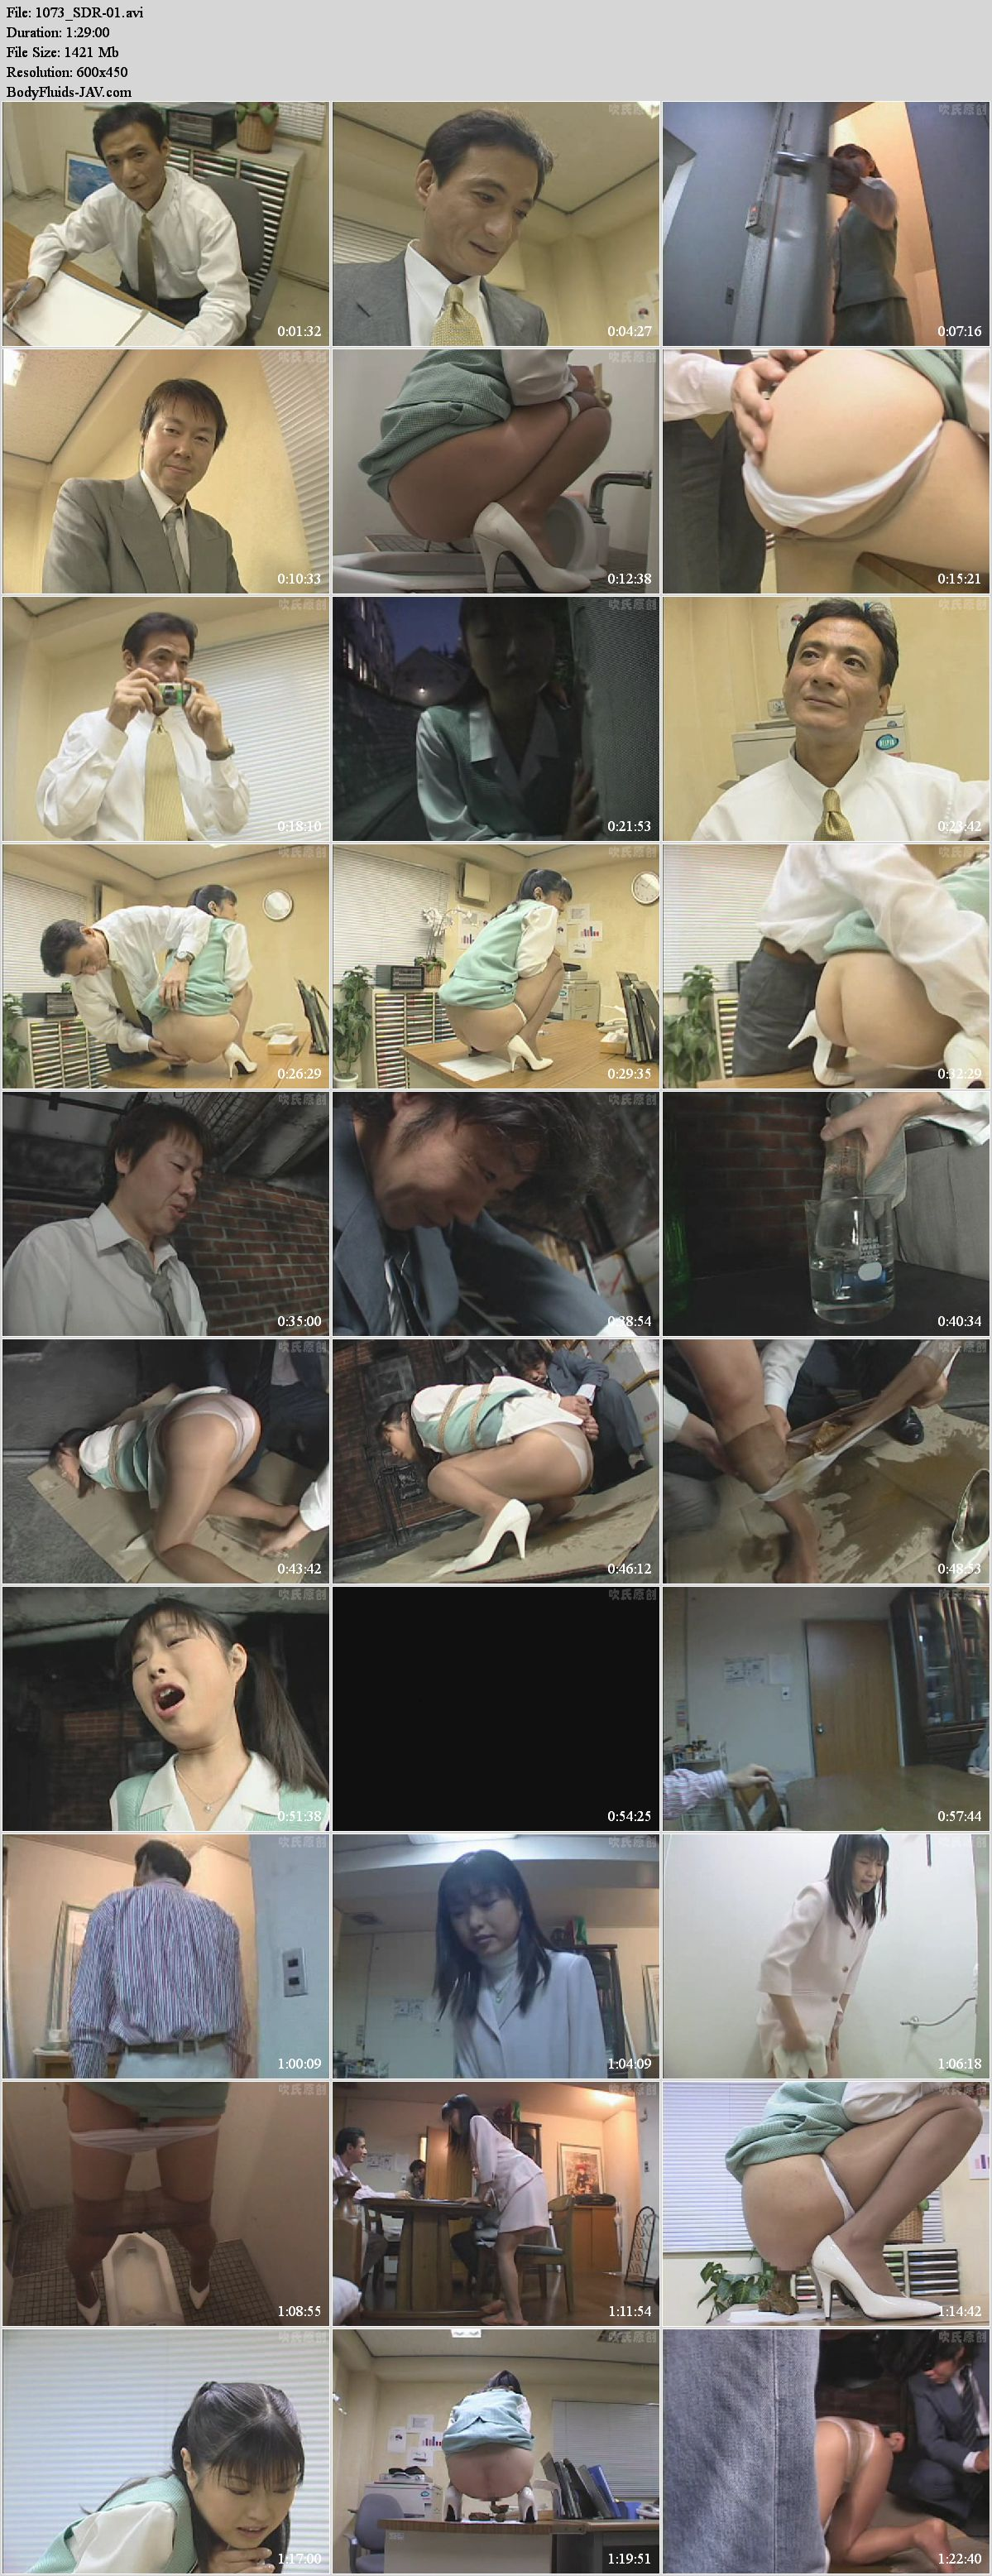 SDR-01 Chief of a weirdo, forcing Anna Kuramoto enema and defecation.